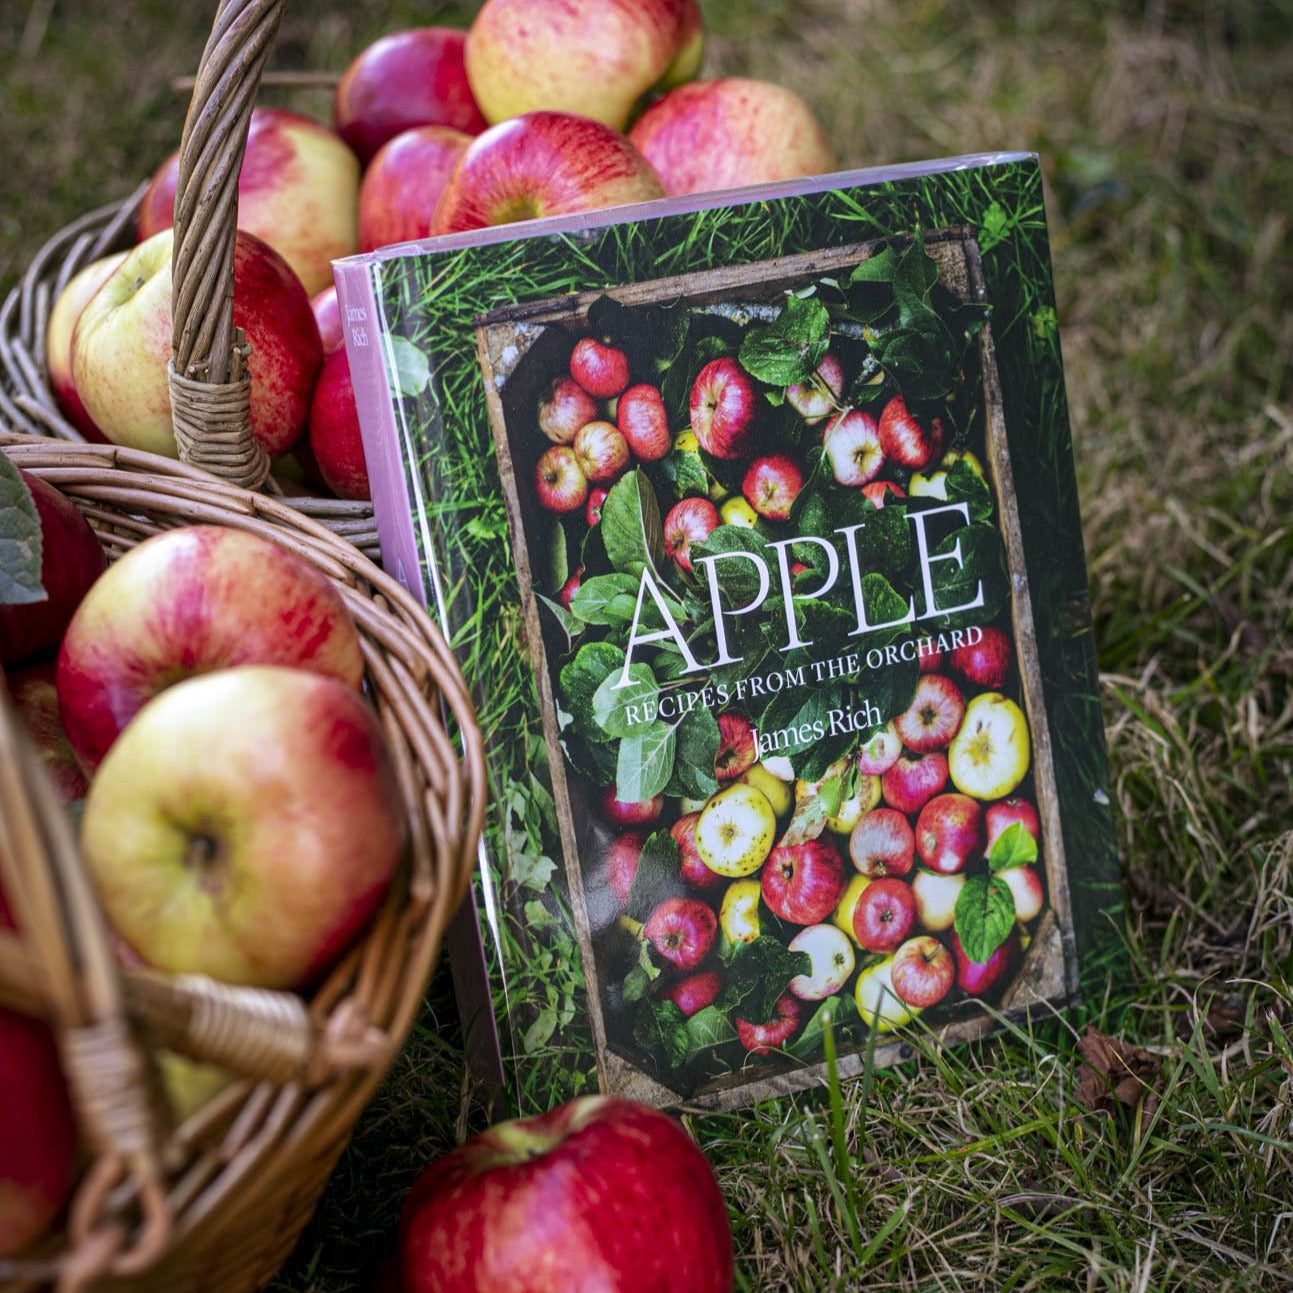 APPLE: RECIPES FROM THE ORCHARD - BY JAMES RICH